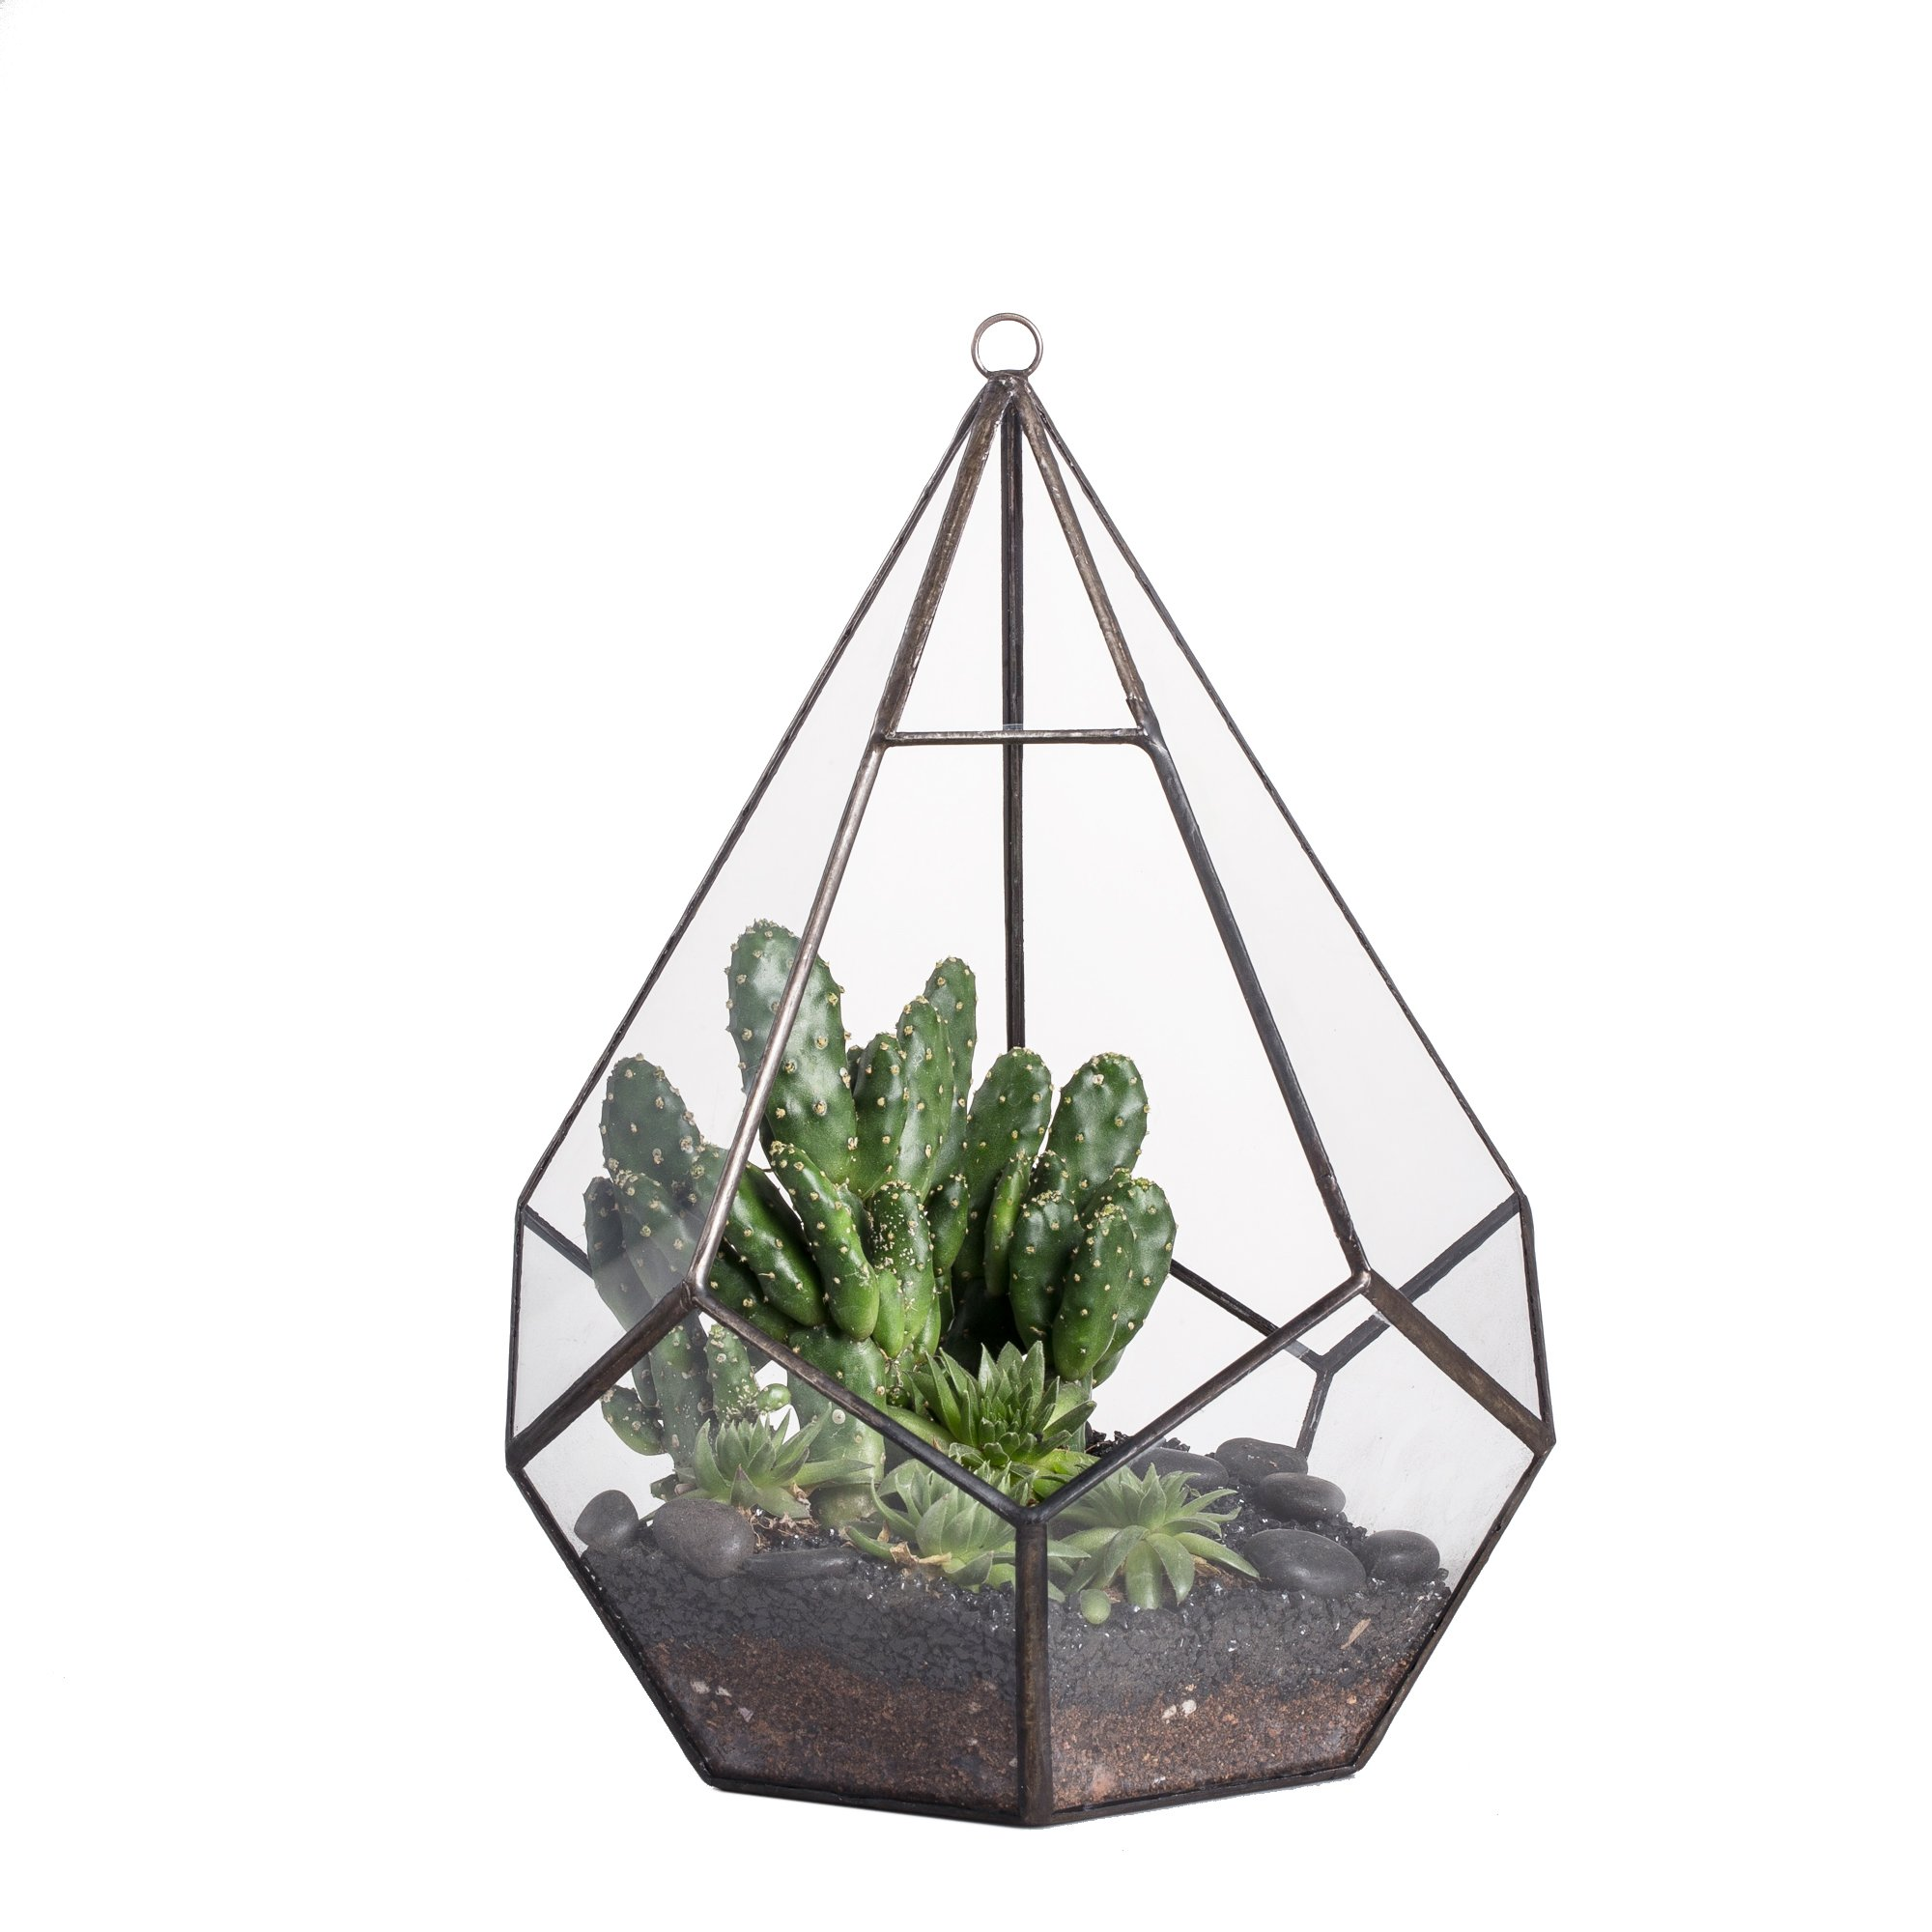 Modern Indoor Opening Wall Hanging Glass Geometric Terrarium Polyhedron Diamond Teardrop Shape Pot Tabletop Window Sill Balcony Decorative Planter Succulent Air Plant Holder Vase Centerpiece 8.6inches by NCYP